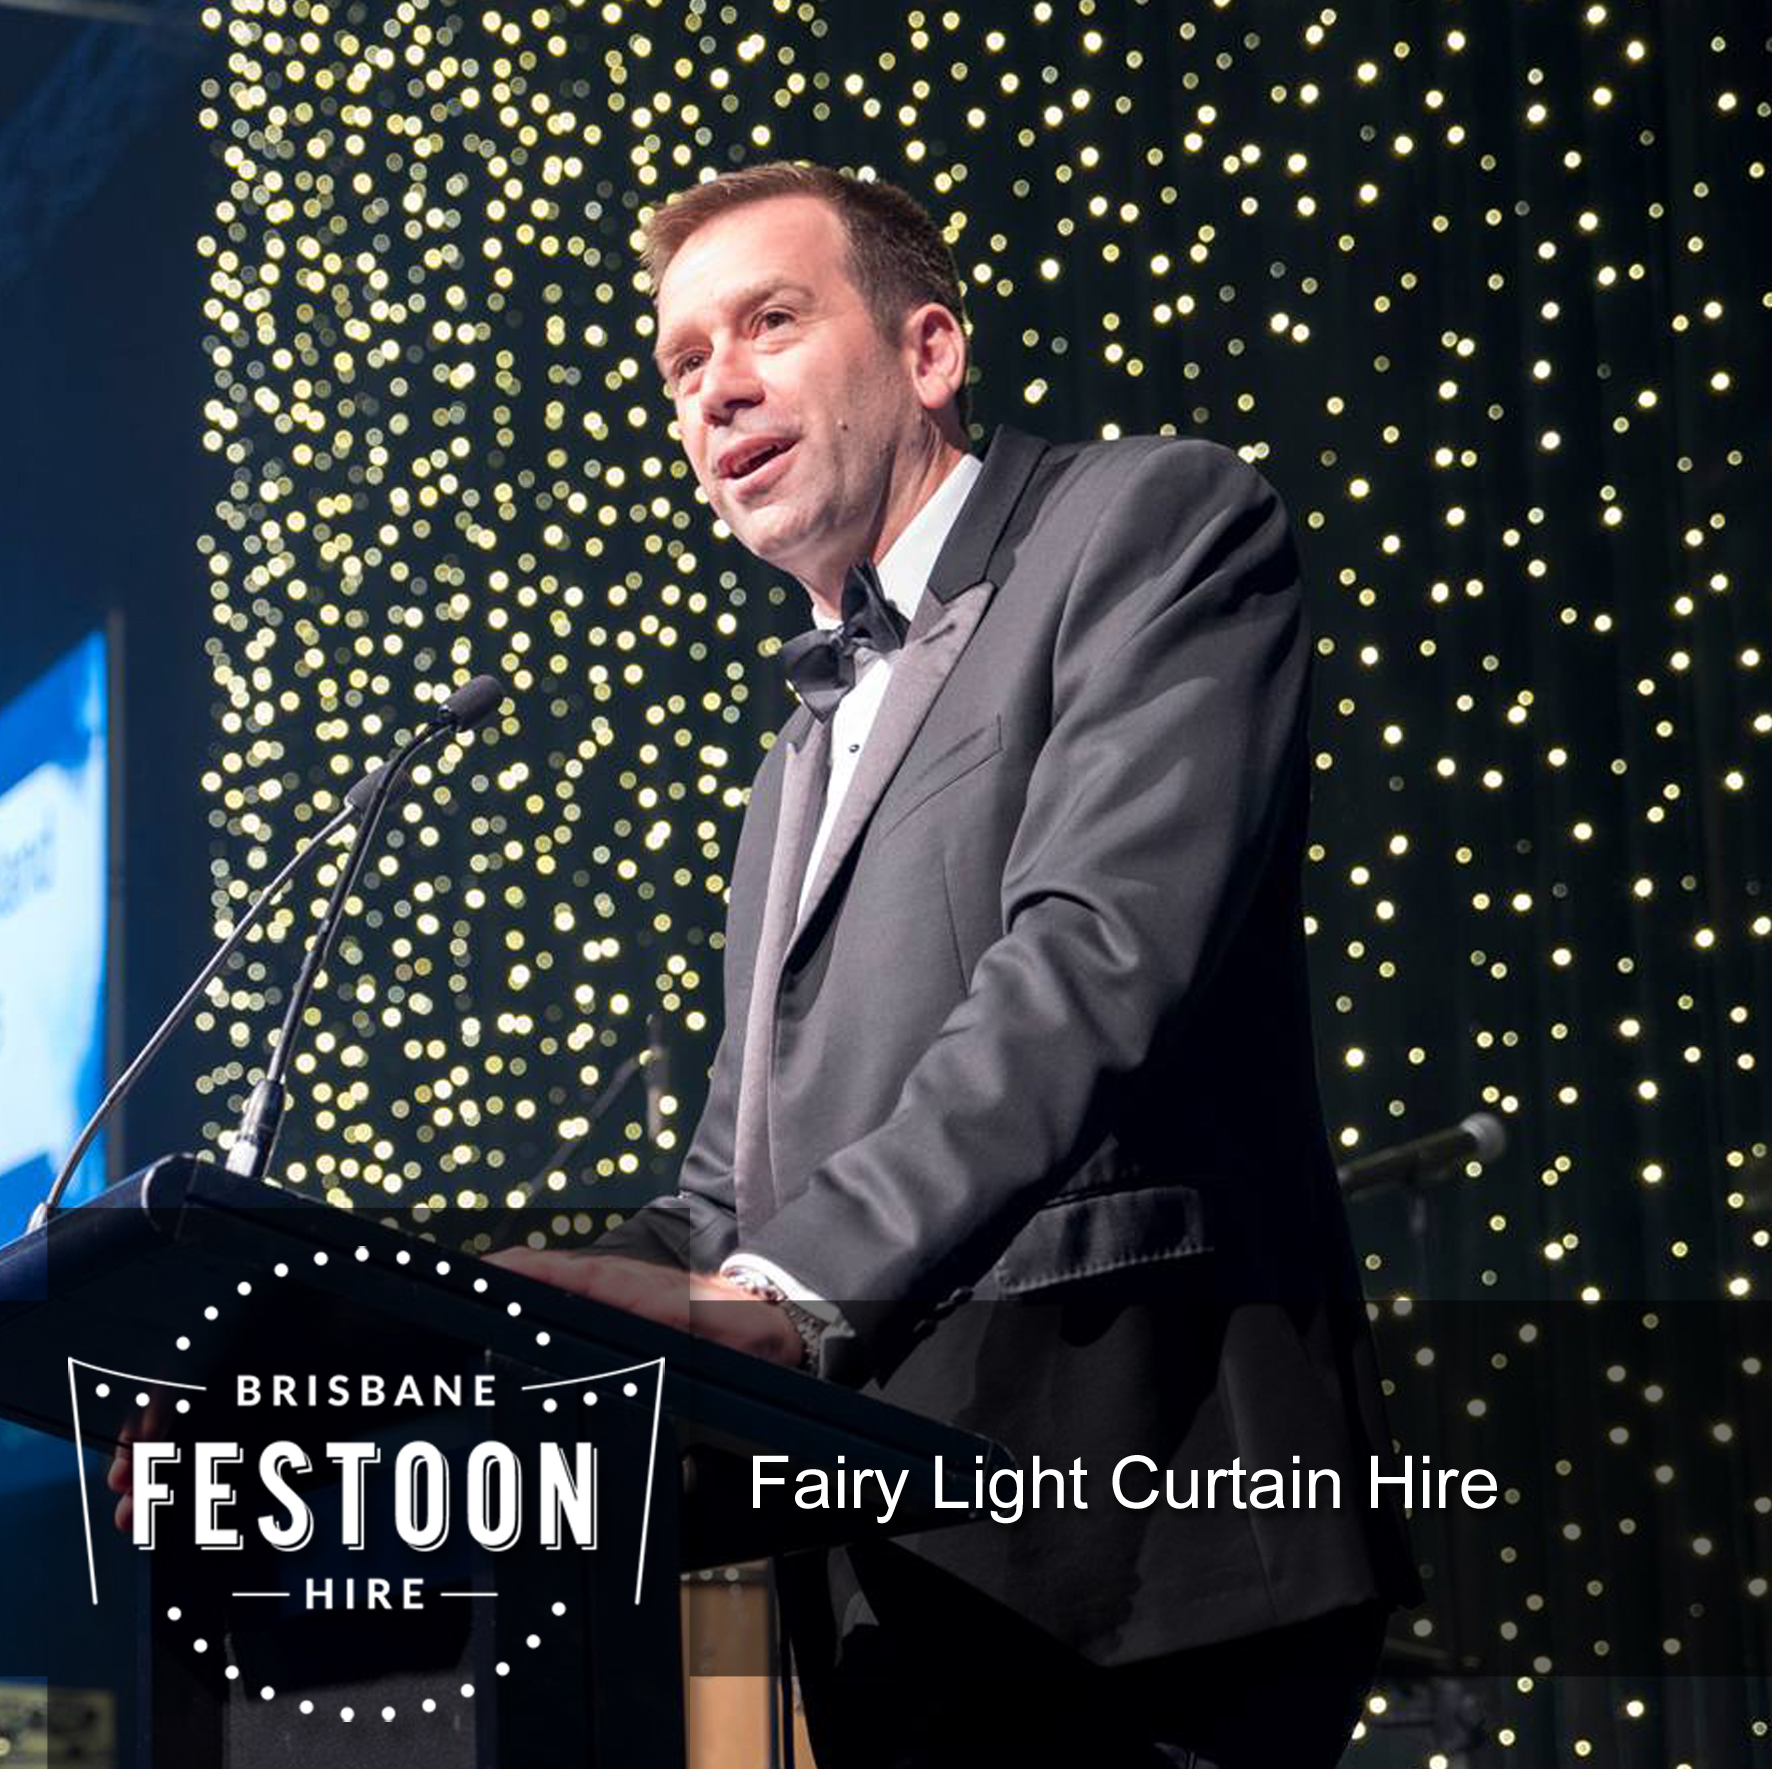 Brisbane Festoon Hire - Fairy Light Curtain Hire 3.jpg